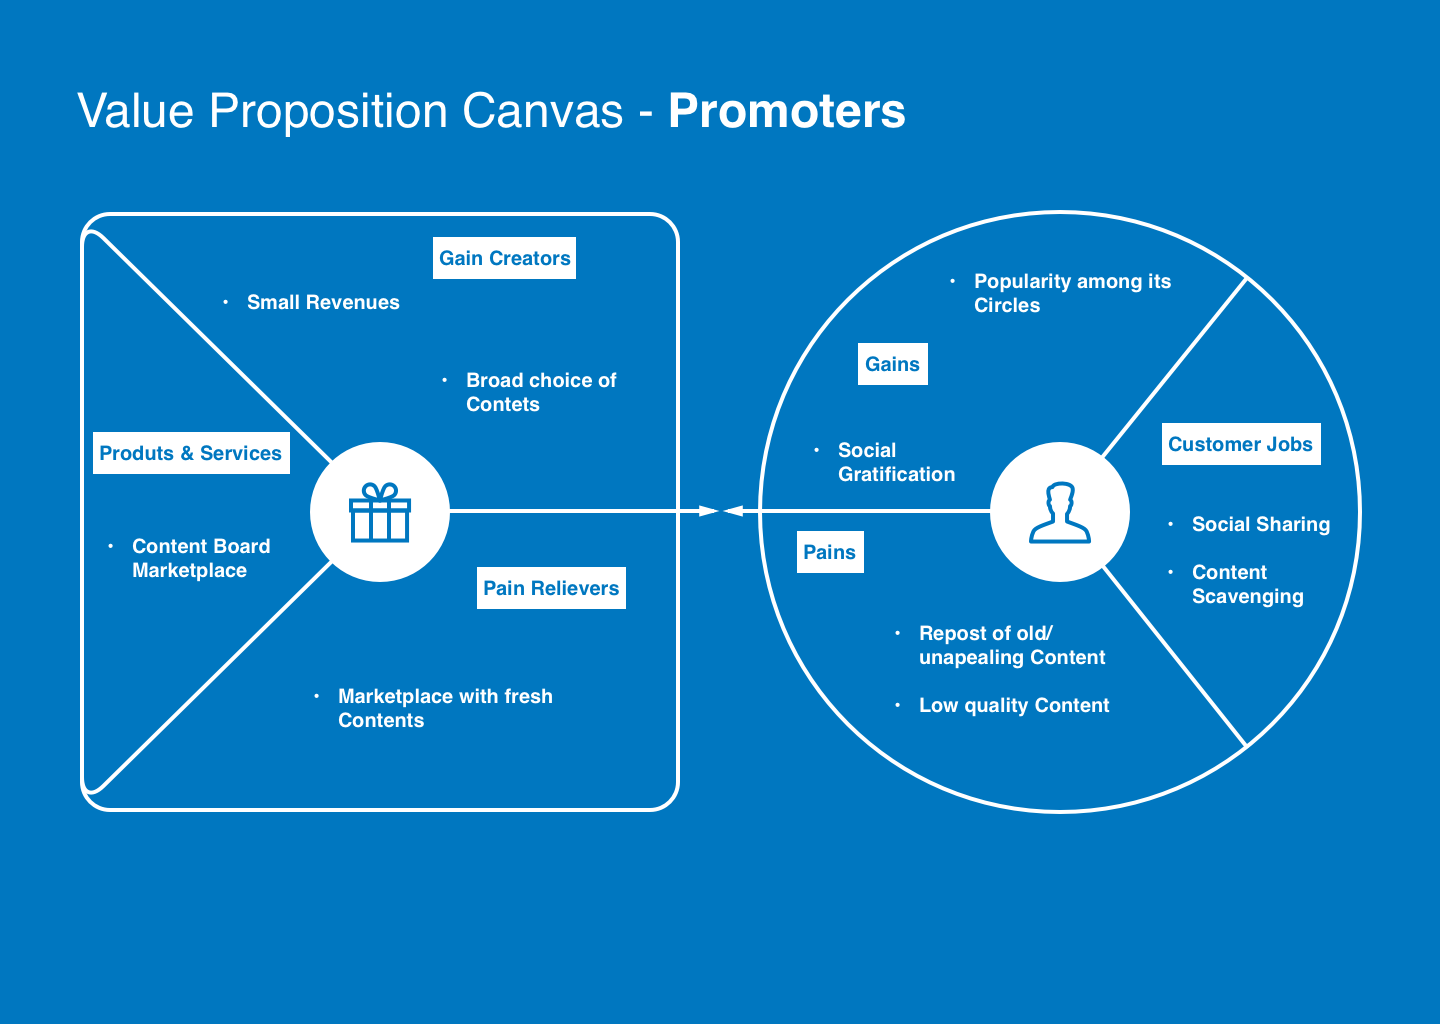 Business Model Canvas - Value proposition for promoters